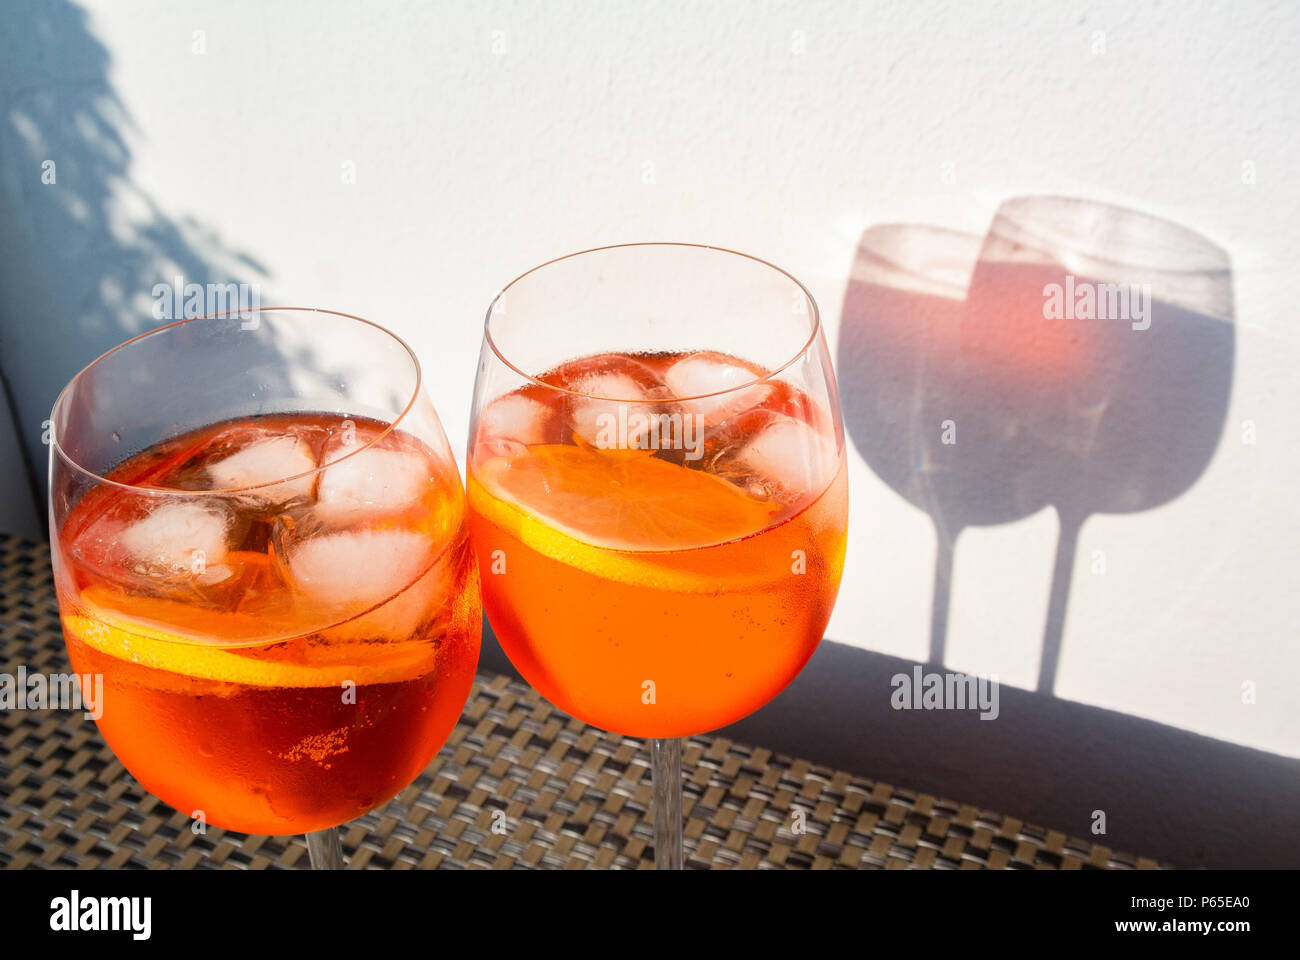 Aperol spritz with white background under sun shine - Stock Image